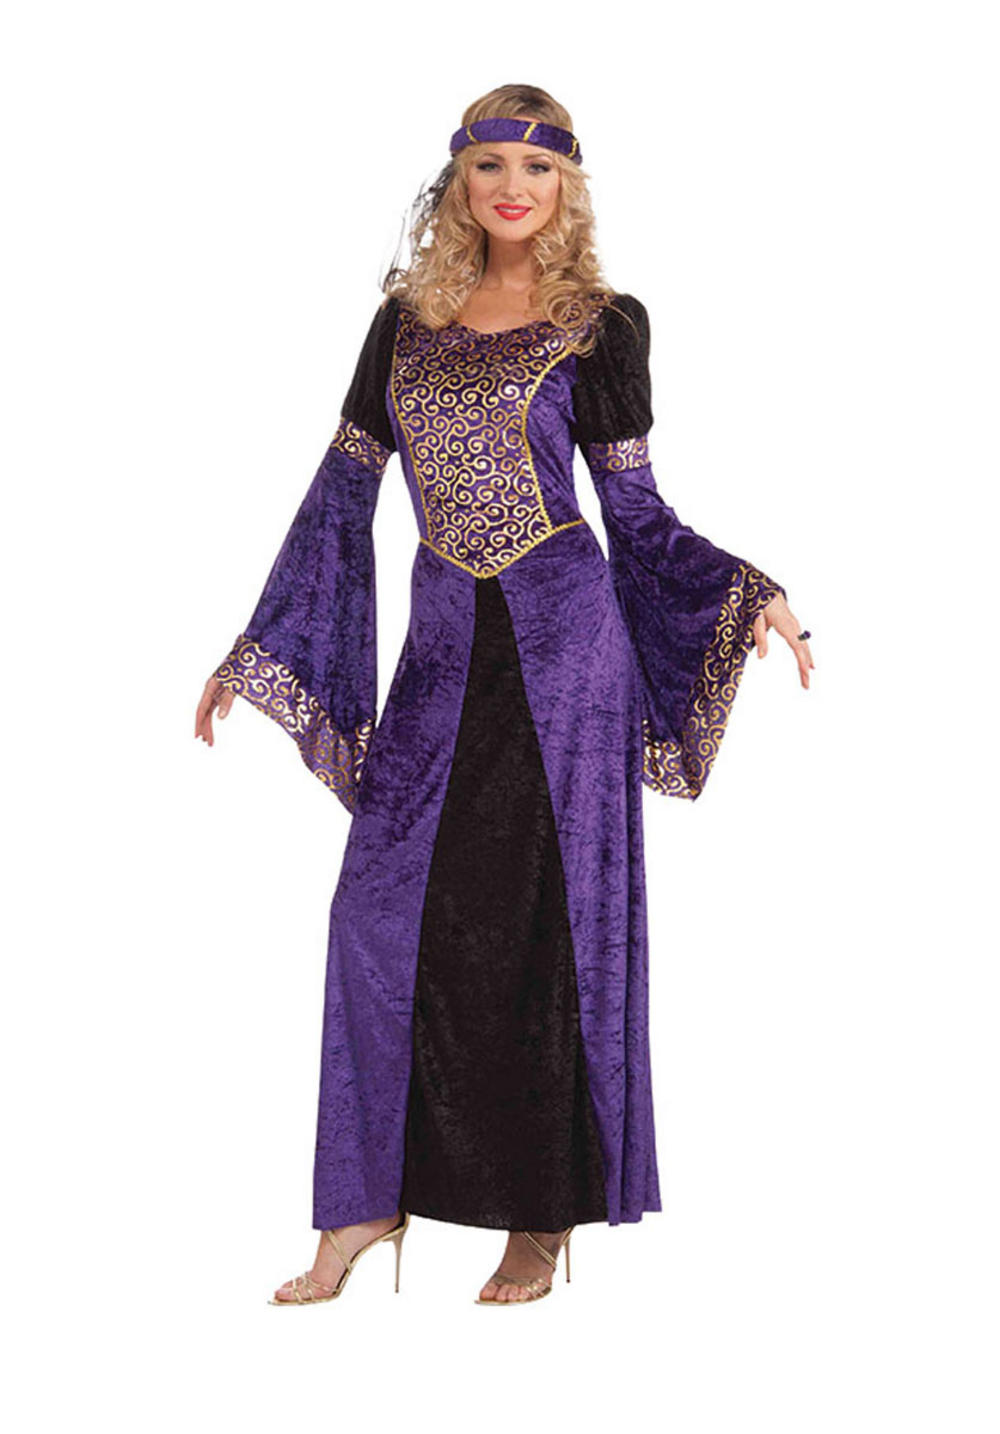 Medieval Maiden Costume | All Ladies Costumes | Mega Fancy Dress